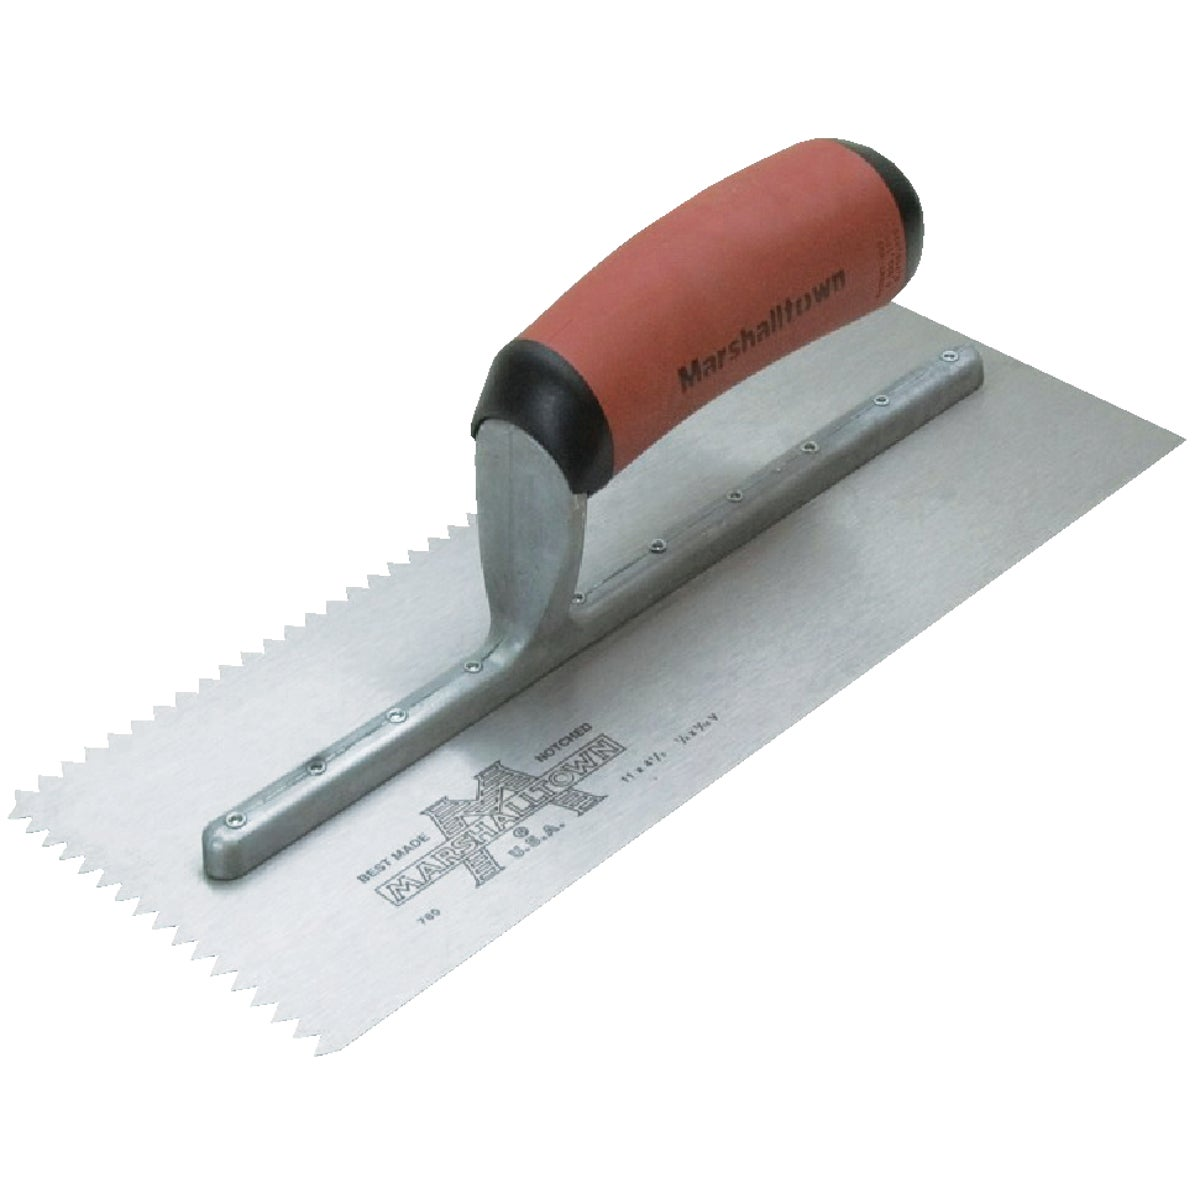 780SD NOTCHED TROWEL - 15808 by Marshalltown Trowel